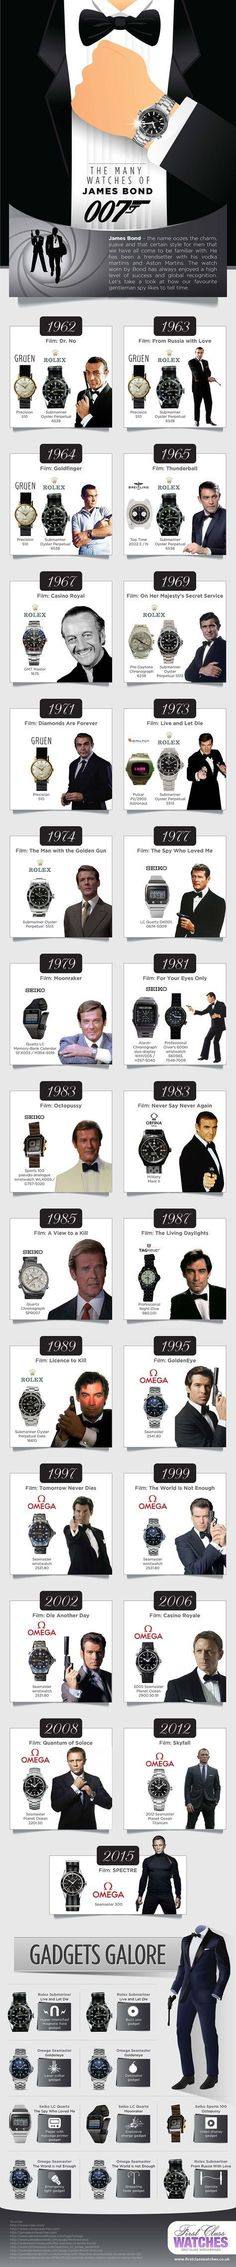 The Many Watches of James Bond - Spectre Infographic #menluxurywatches